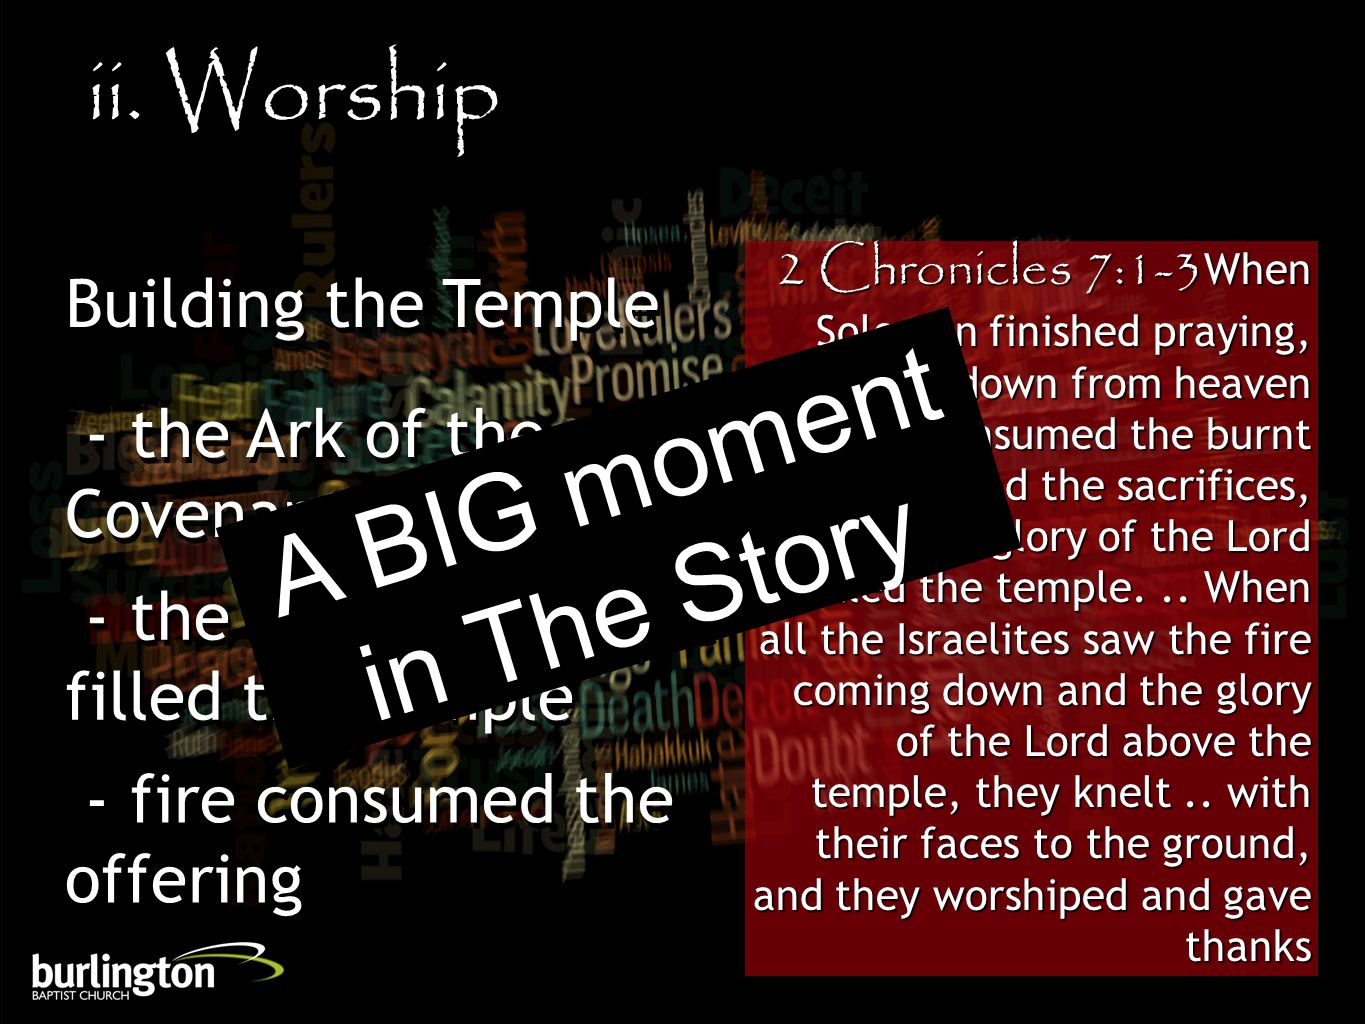 2 Chronicles 7:1-3When Solomon finished praying, fire came down from heaven and consumed the burnt offering and the sacrifices, and the glory of the Lord filled the temple...